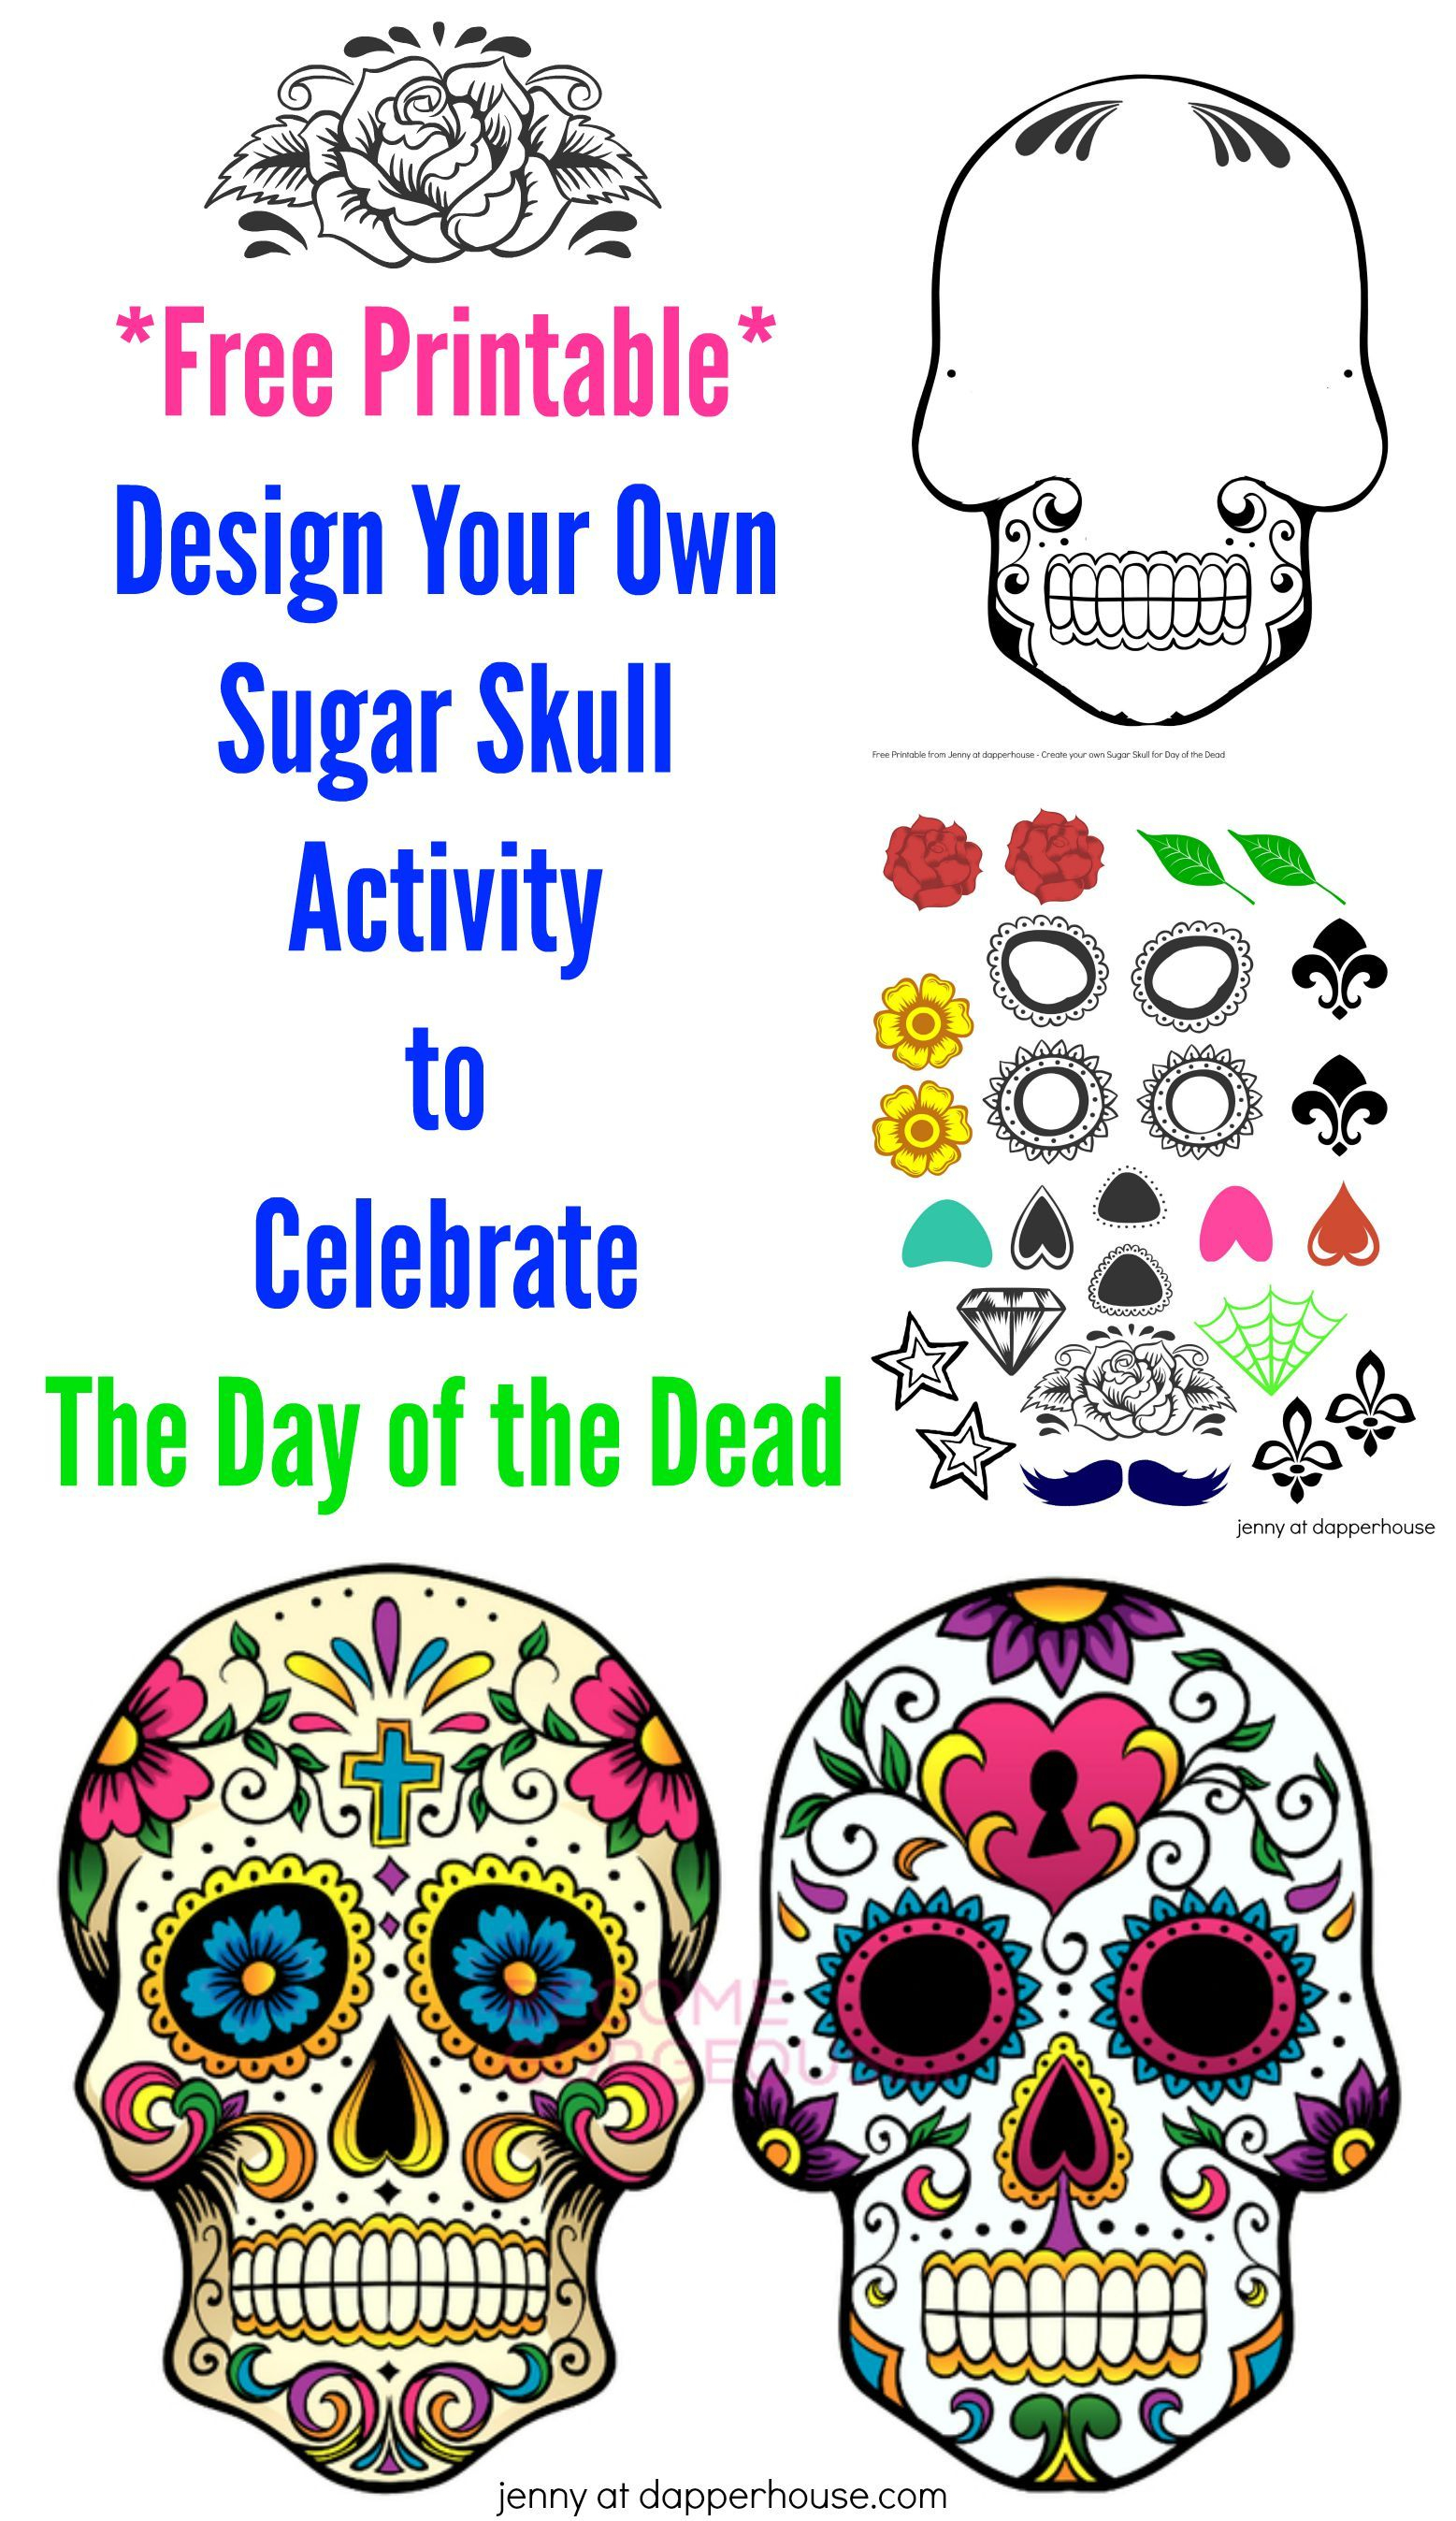 Free Printable Create A Sugar Skull For Day Of The Dead Activity - Free Printable Sugar Skull Day Of The Dead Mask